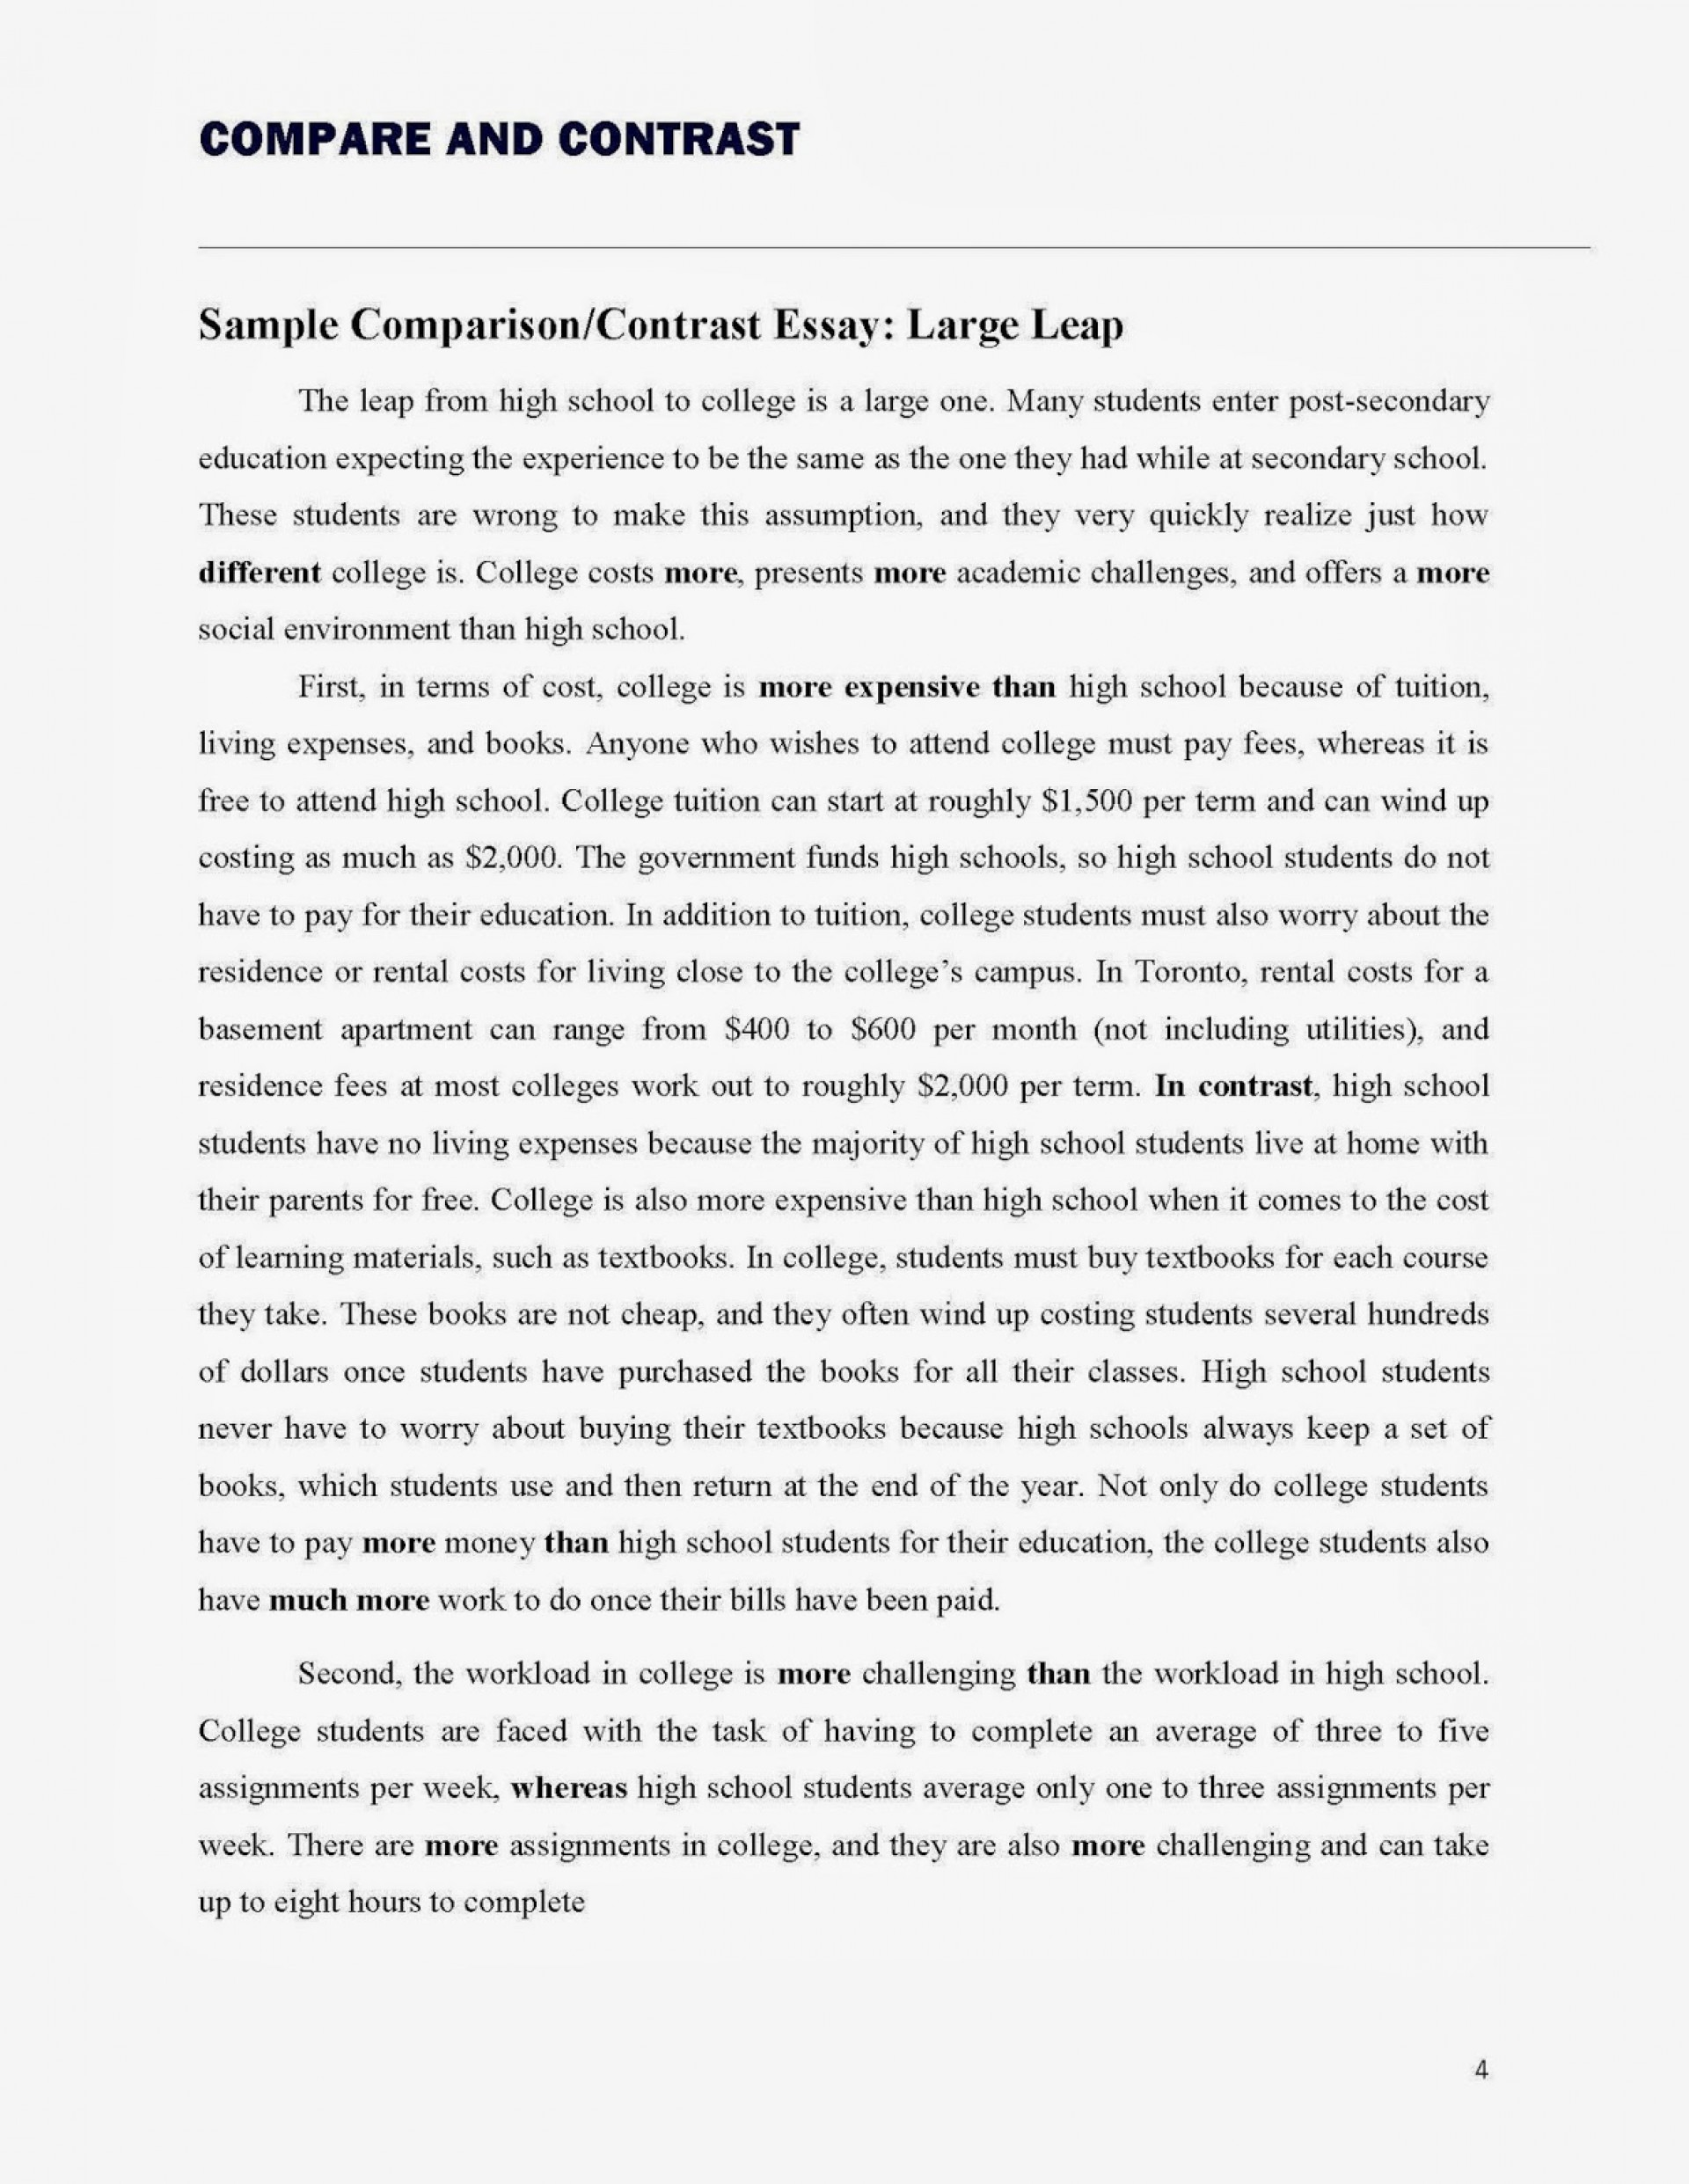 011 Compare And Contrast Essay Compareandcontrastessay Page 4h125 Frightening Topics Outline Doc Sample 4th Grade 1920